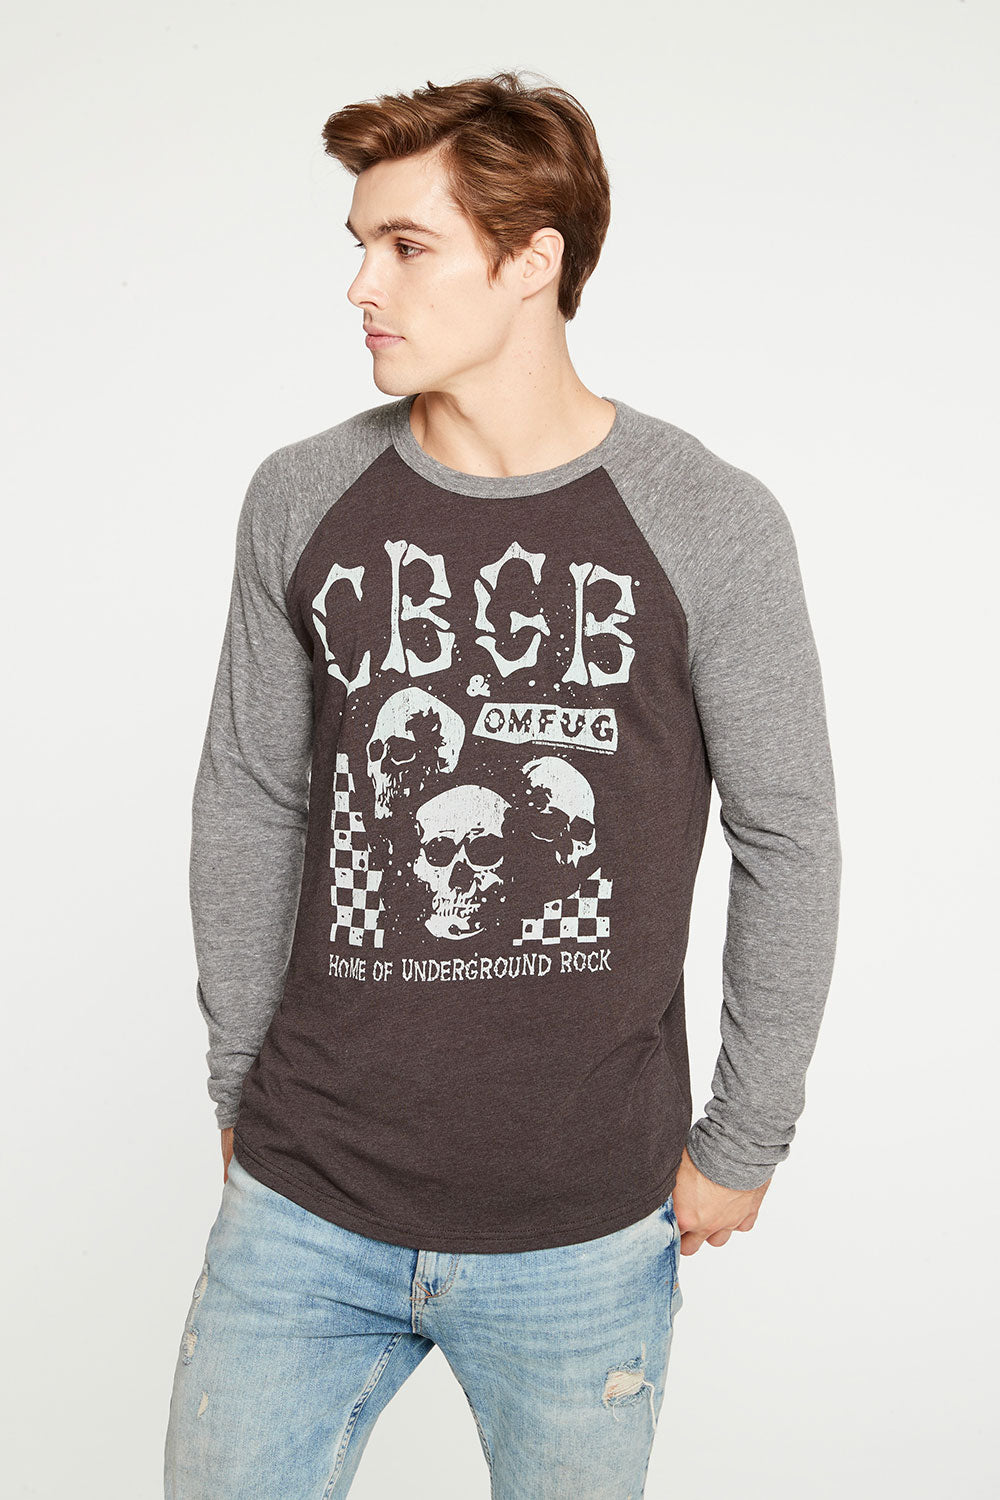 CBGB - Checkered Skulls RECYCLED chaserbrand4.myshopify.com